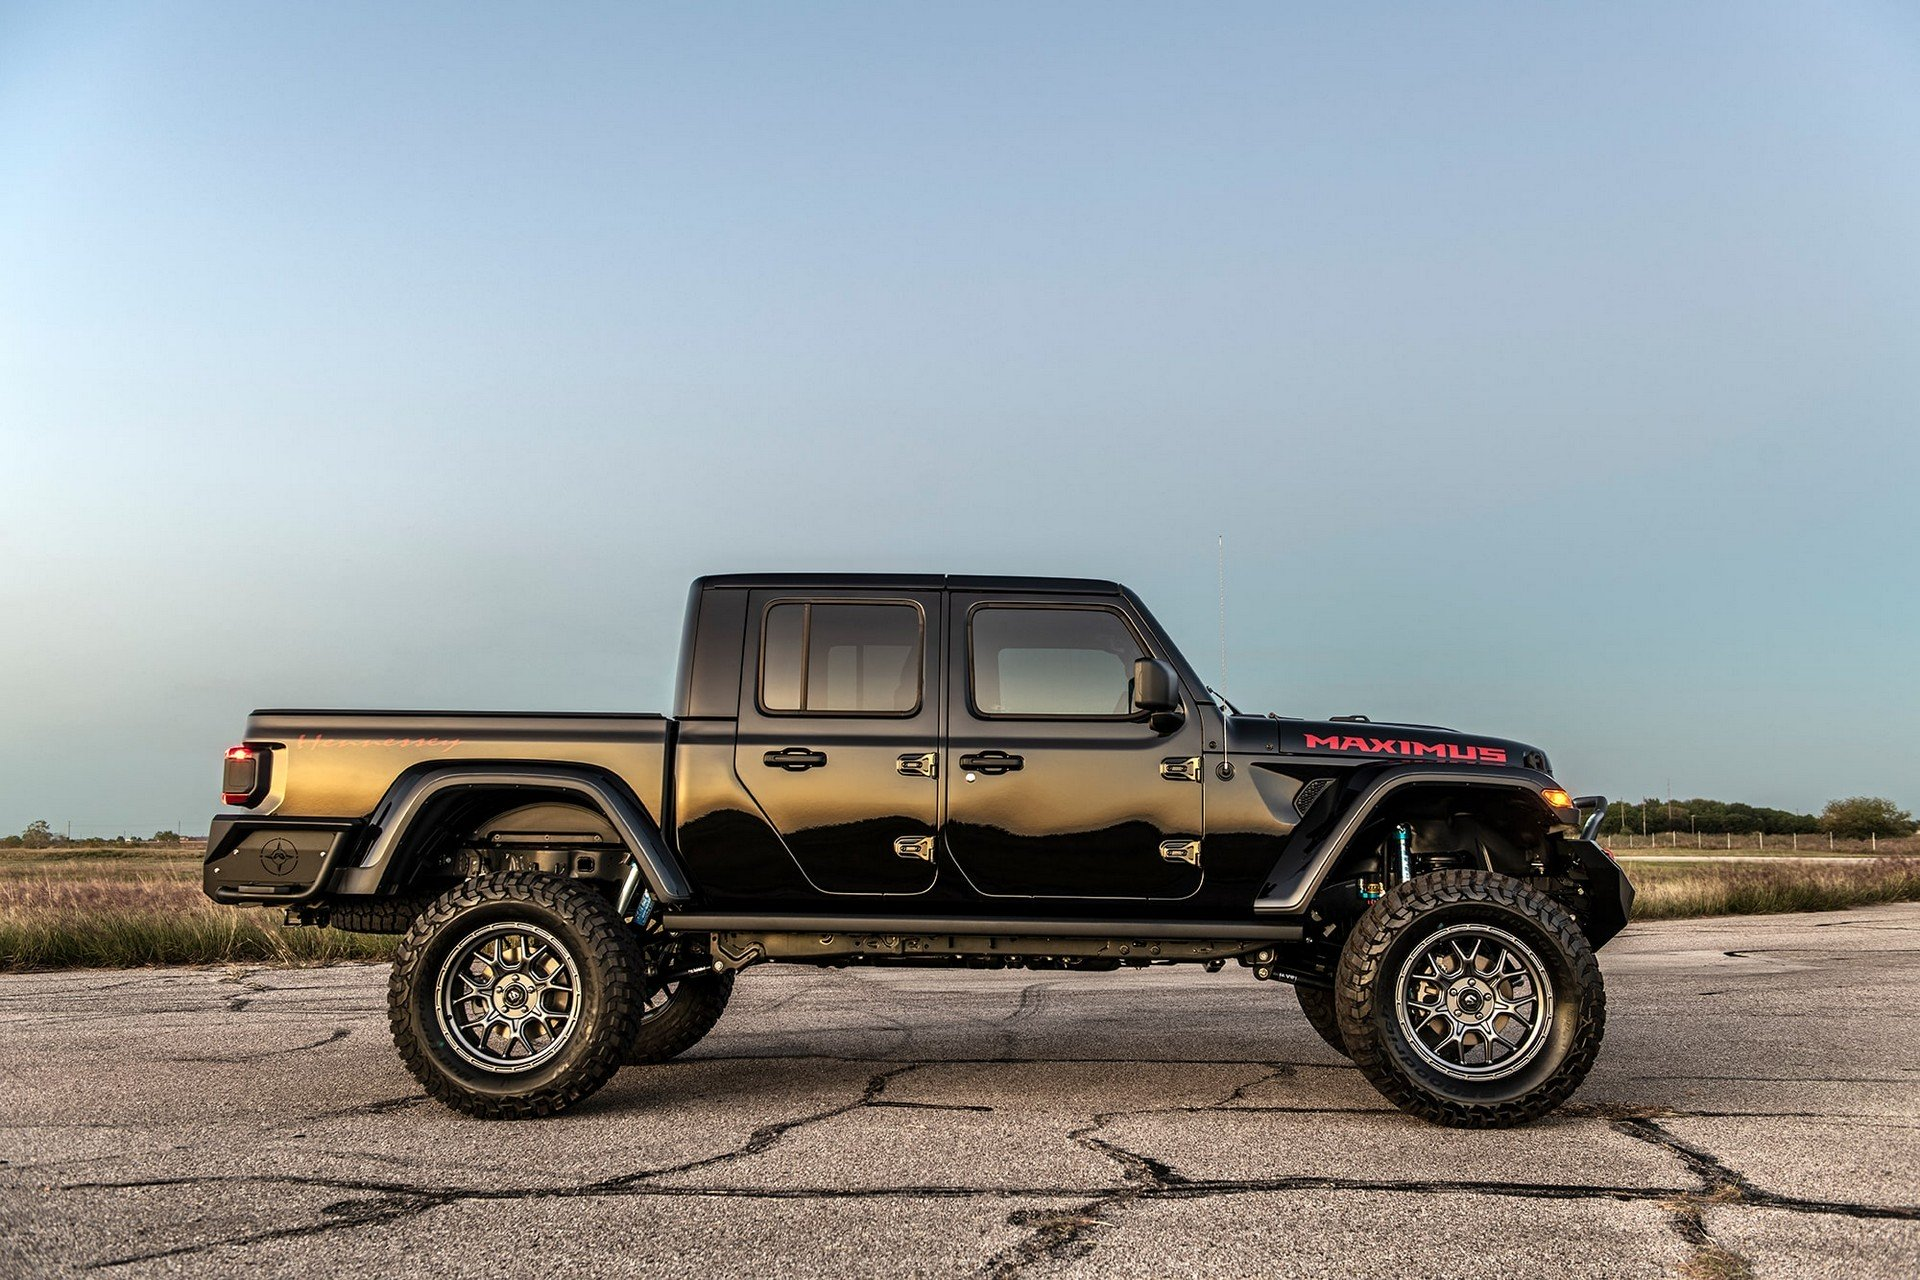 In June this year, Hennessey announced an upcoming series of 24 engine-swapped Jeep Gladiator trucks (Hellcat V8, 1000hp / 745kW). The first one is now complete.